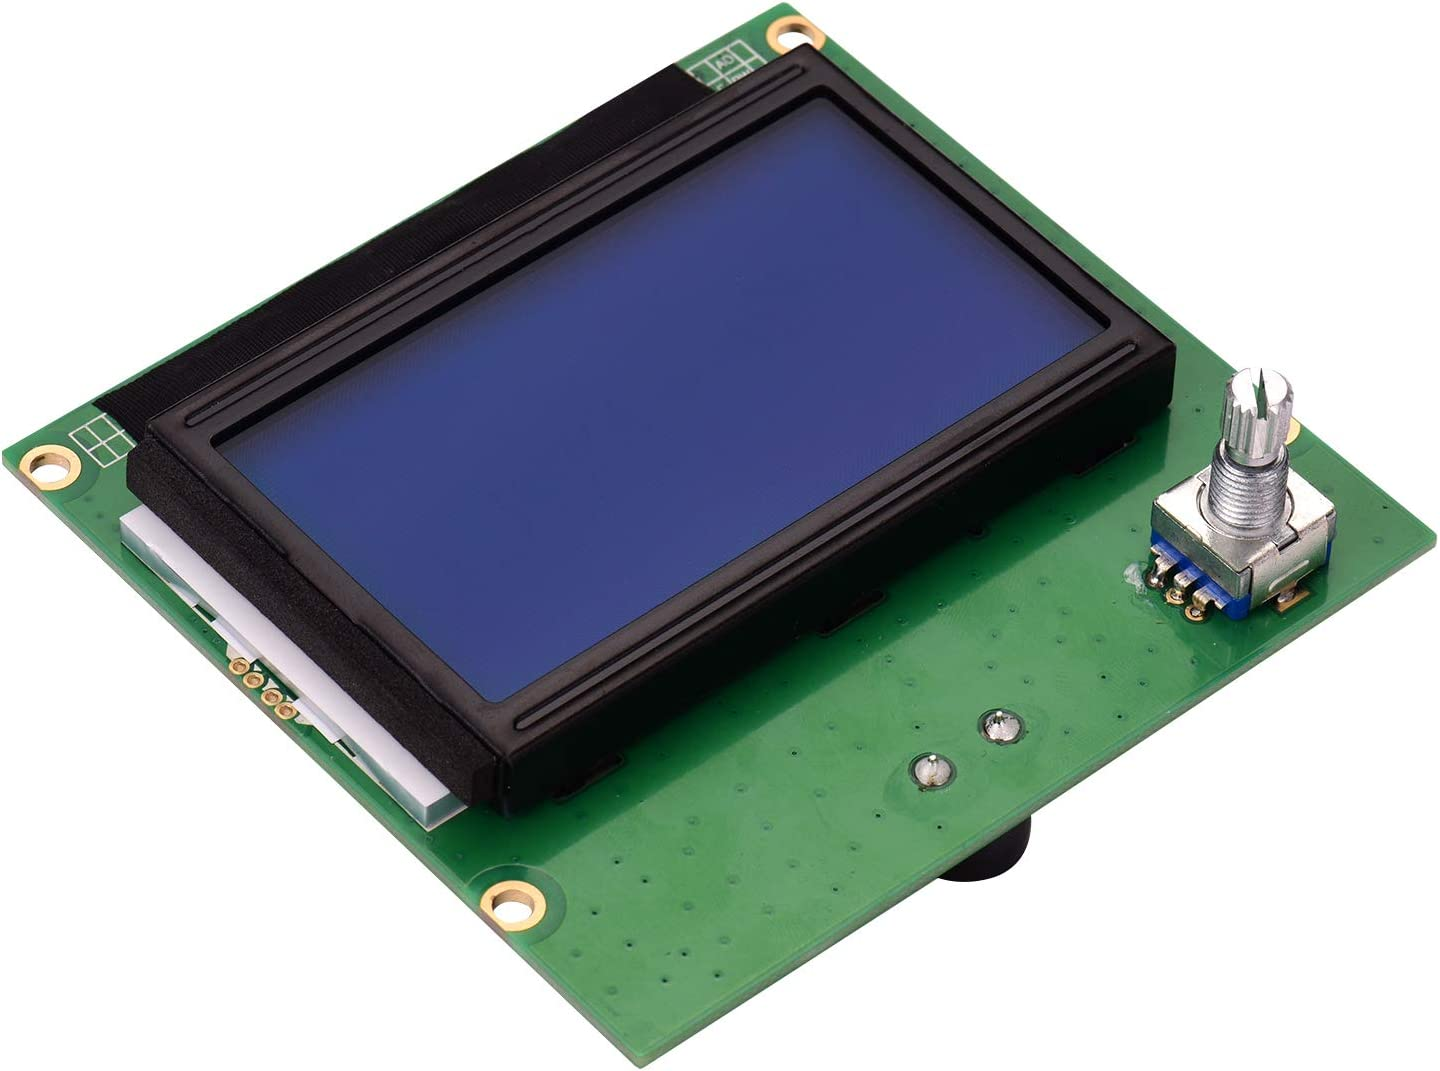 for creality cr-10,Tickas 3D Printer Parts 12864 LCD Display Screen with Cable Replacement for Creality CR-10 CR-10S S4 S5 3 3D Printer